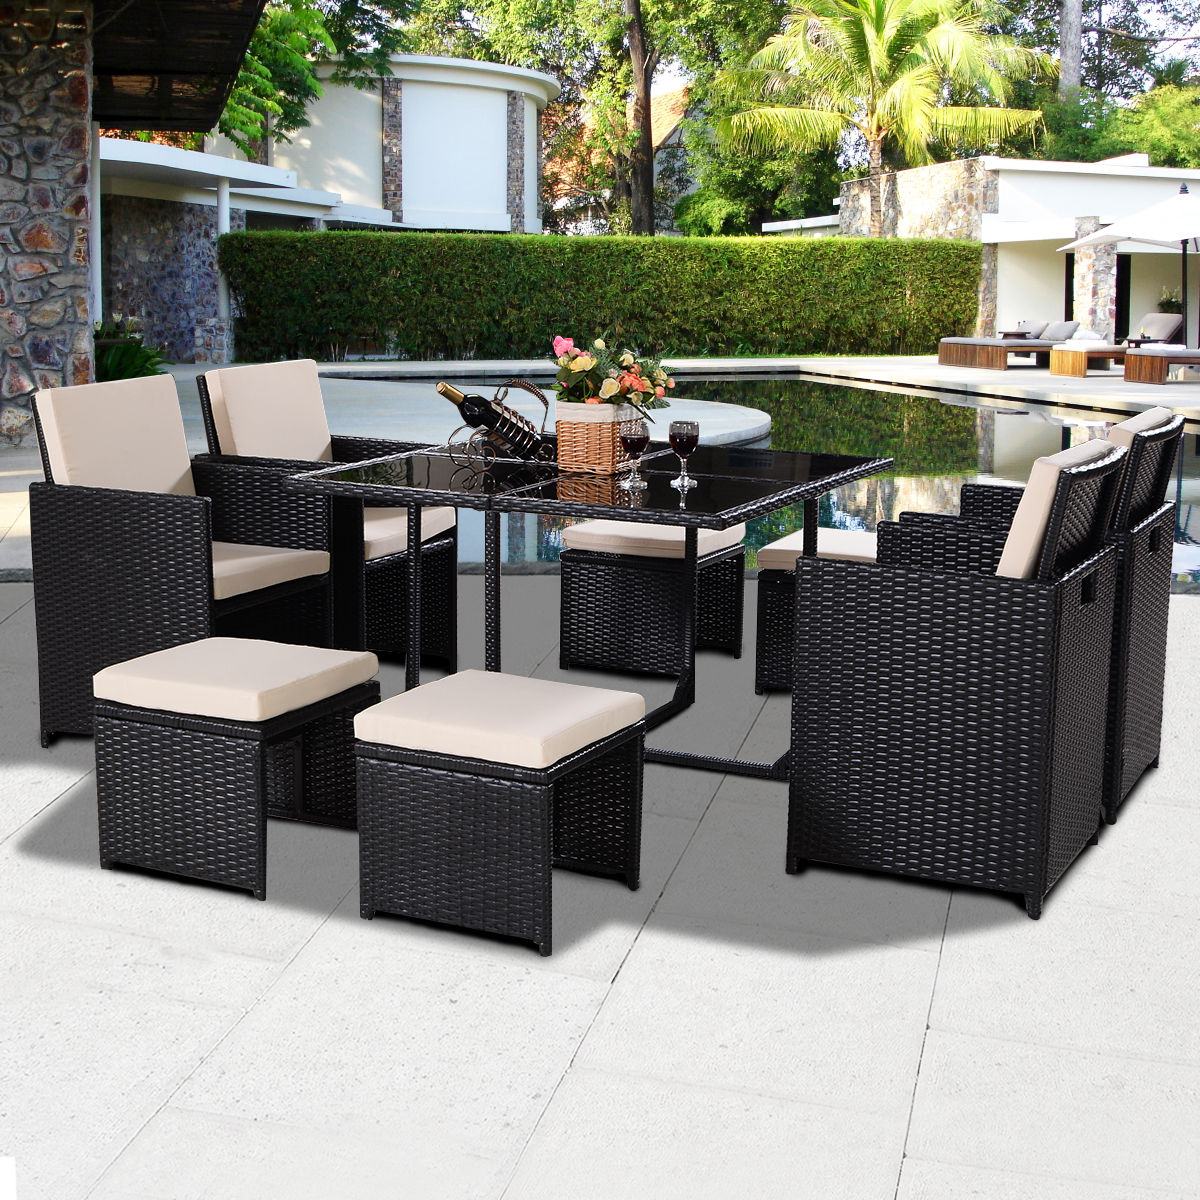 Giantex 9 pcs black patio garden rattan wicker sofa set modern outdoor furniture set cushioned with ottoman chairs hw52375